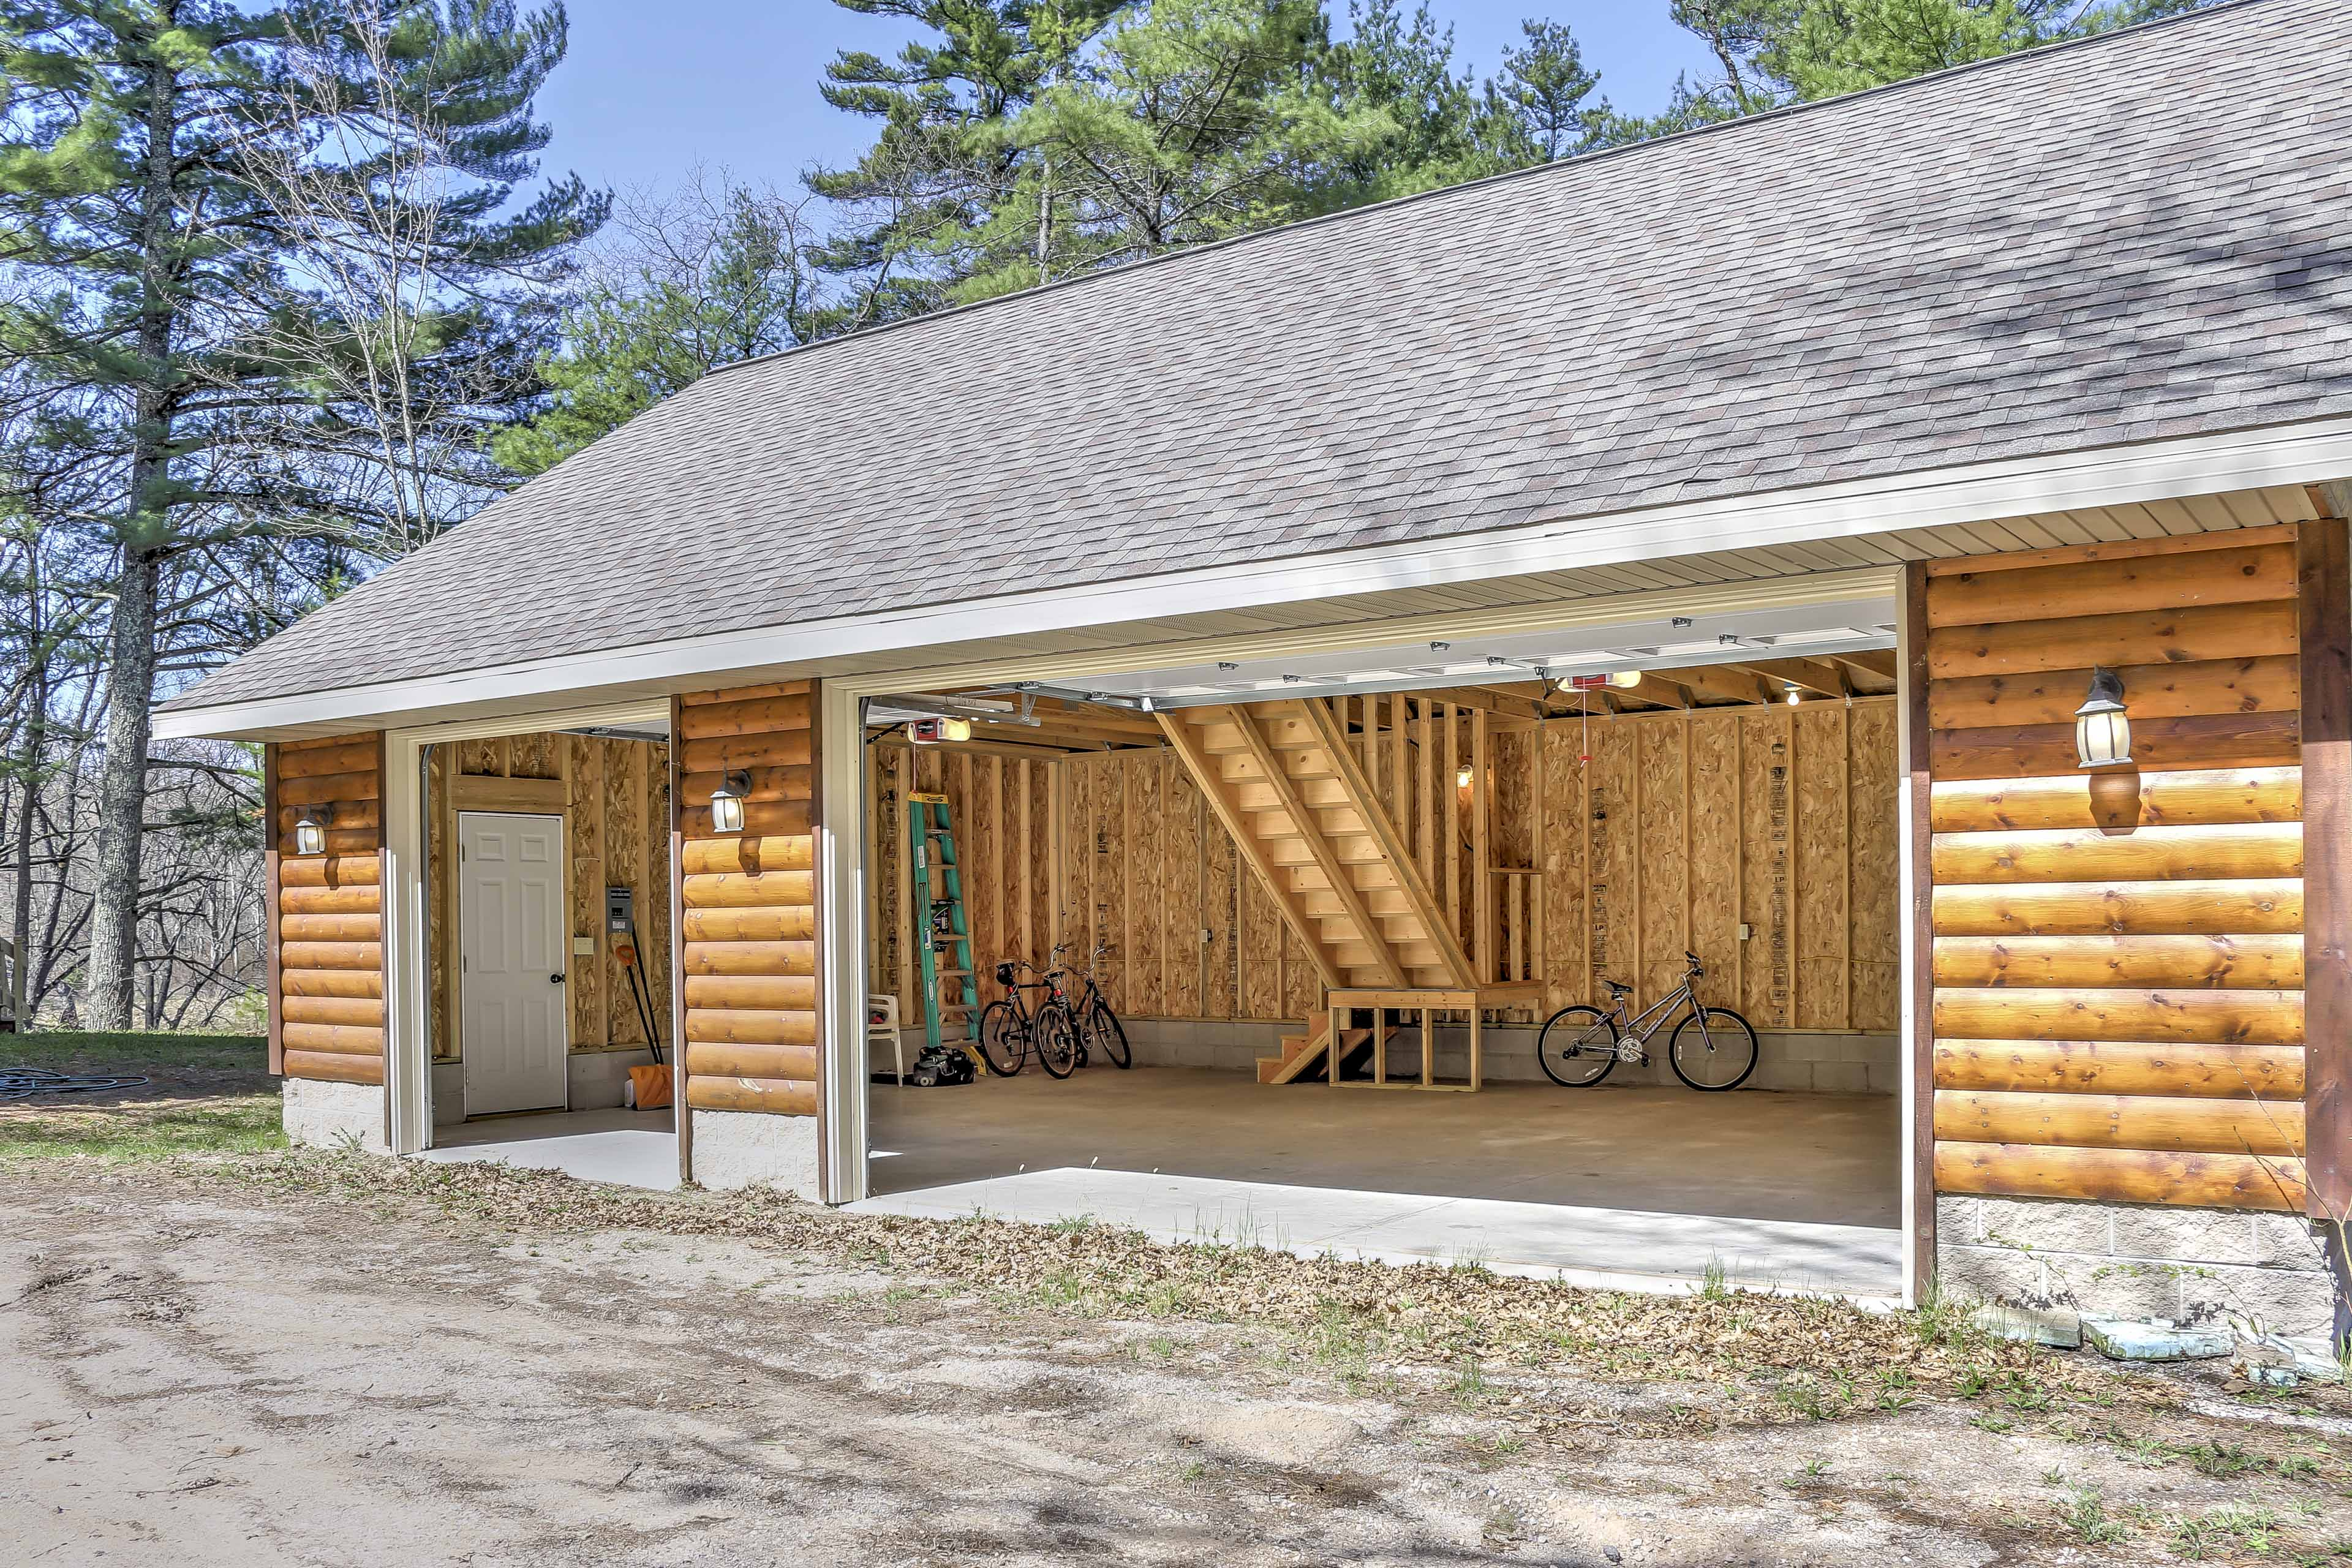 A 3 car garage is available for parking.